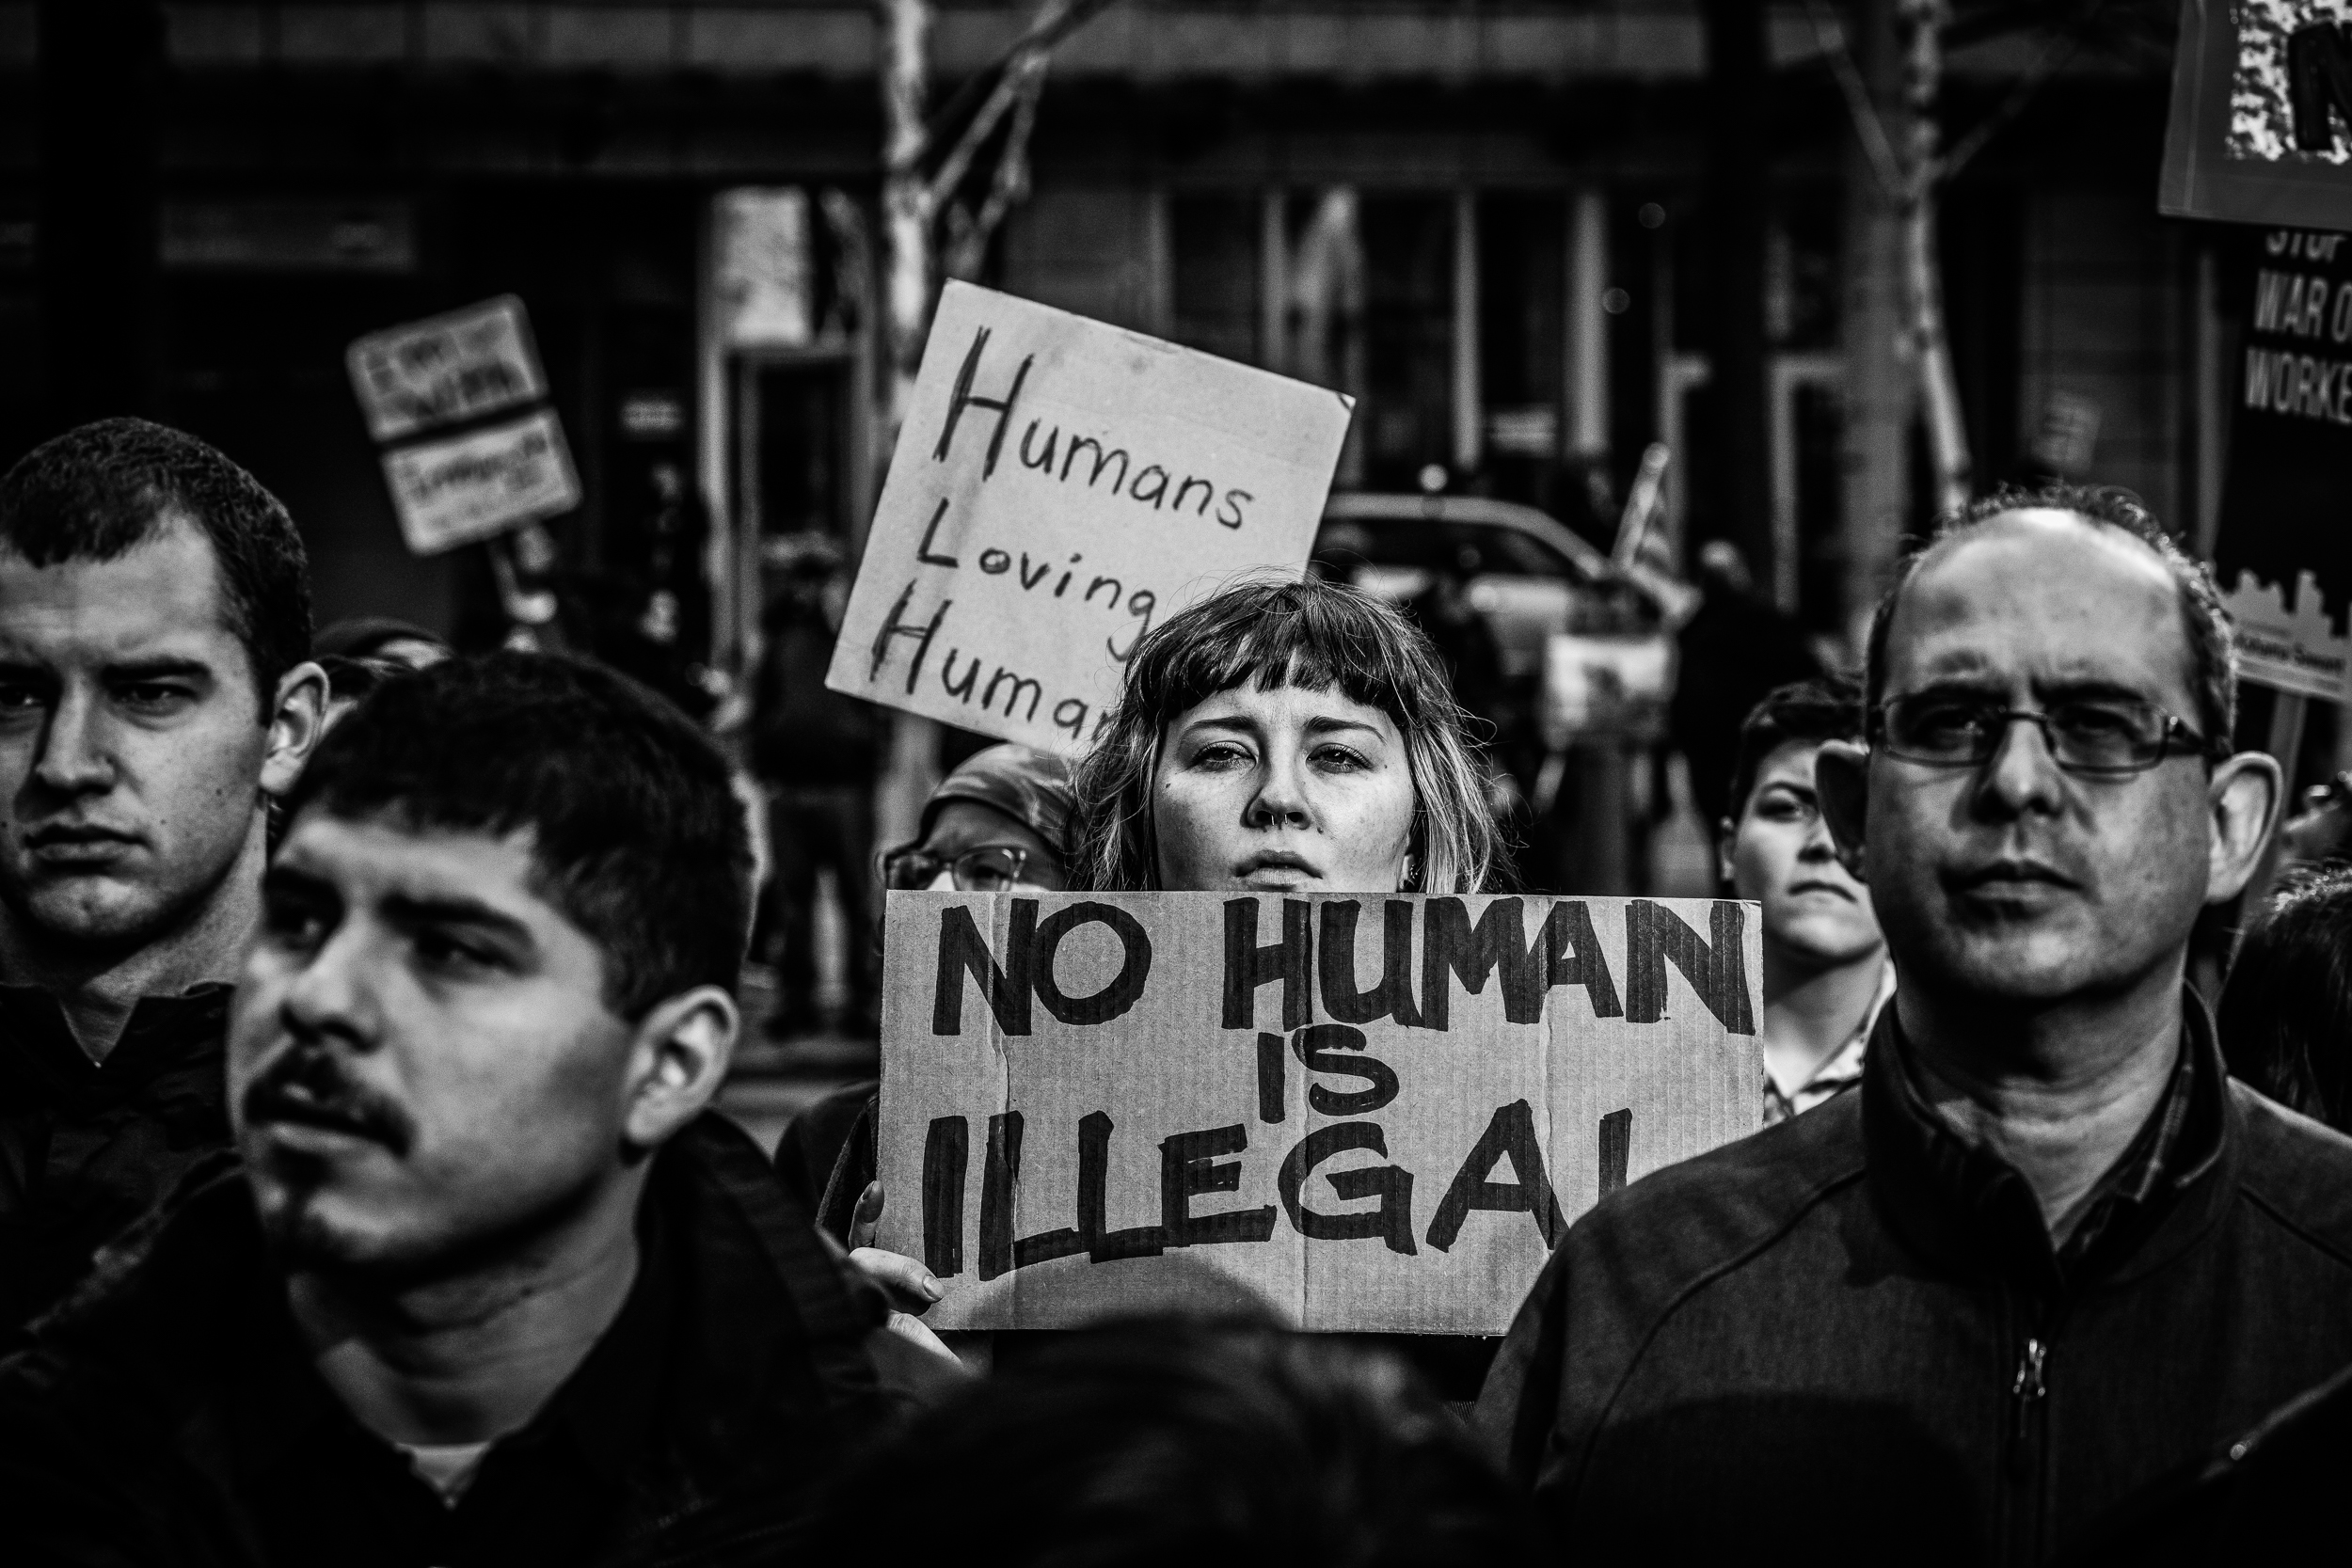 No Human is Illegal-1.jpg